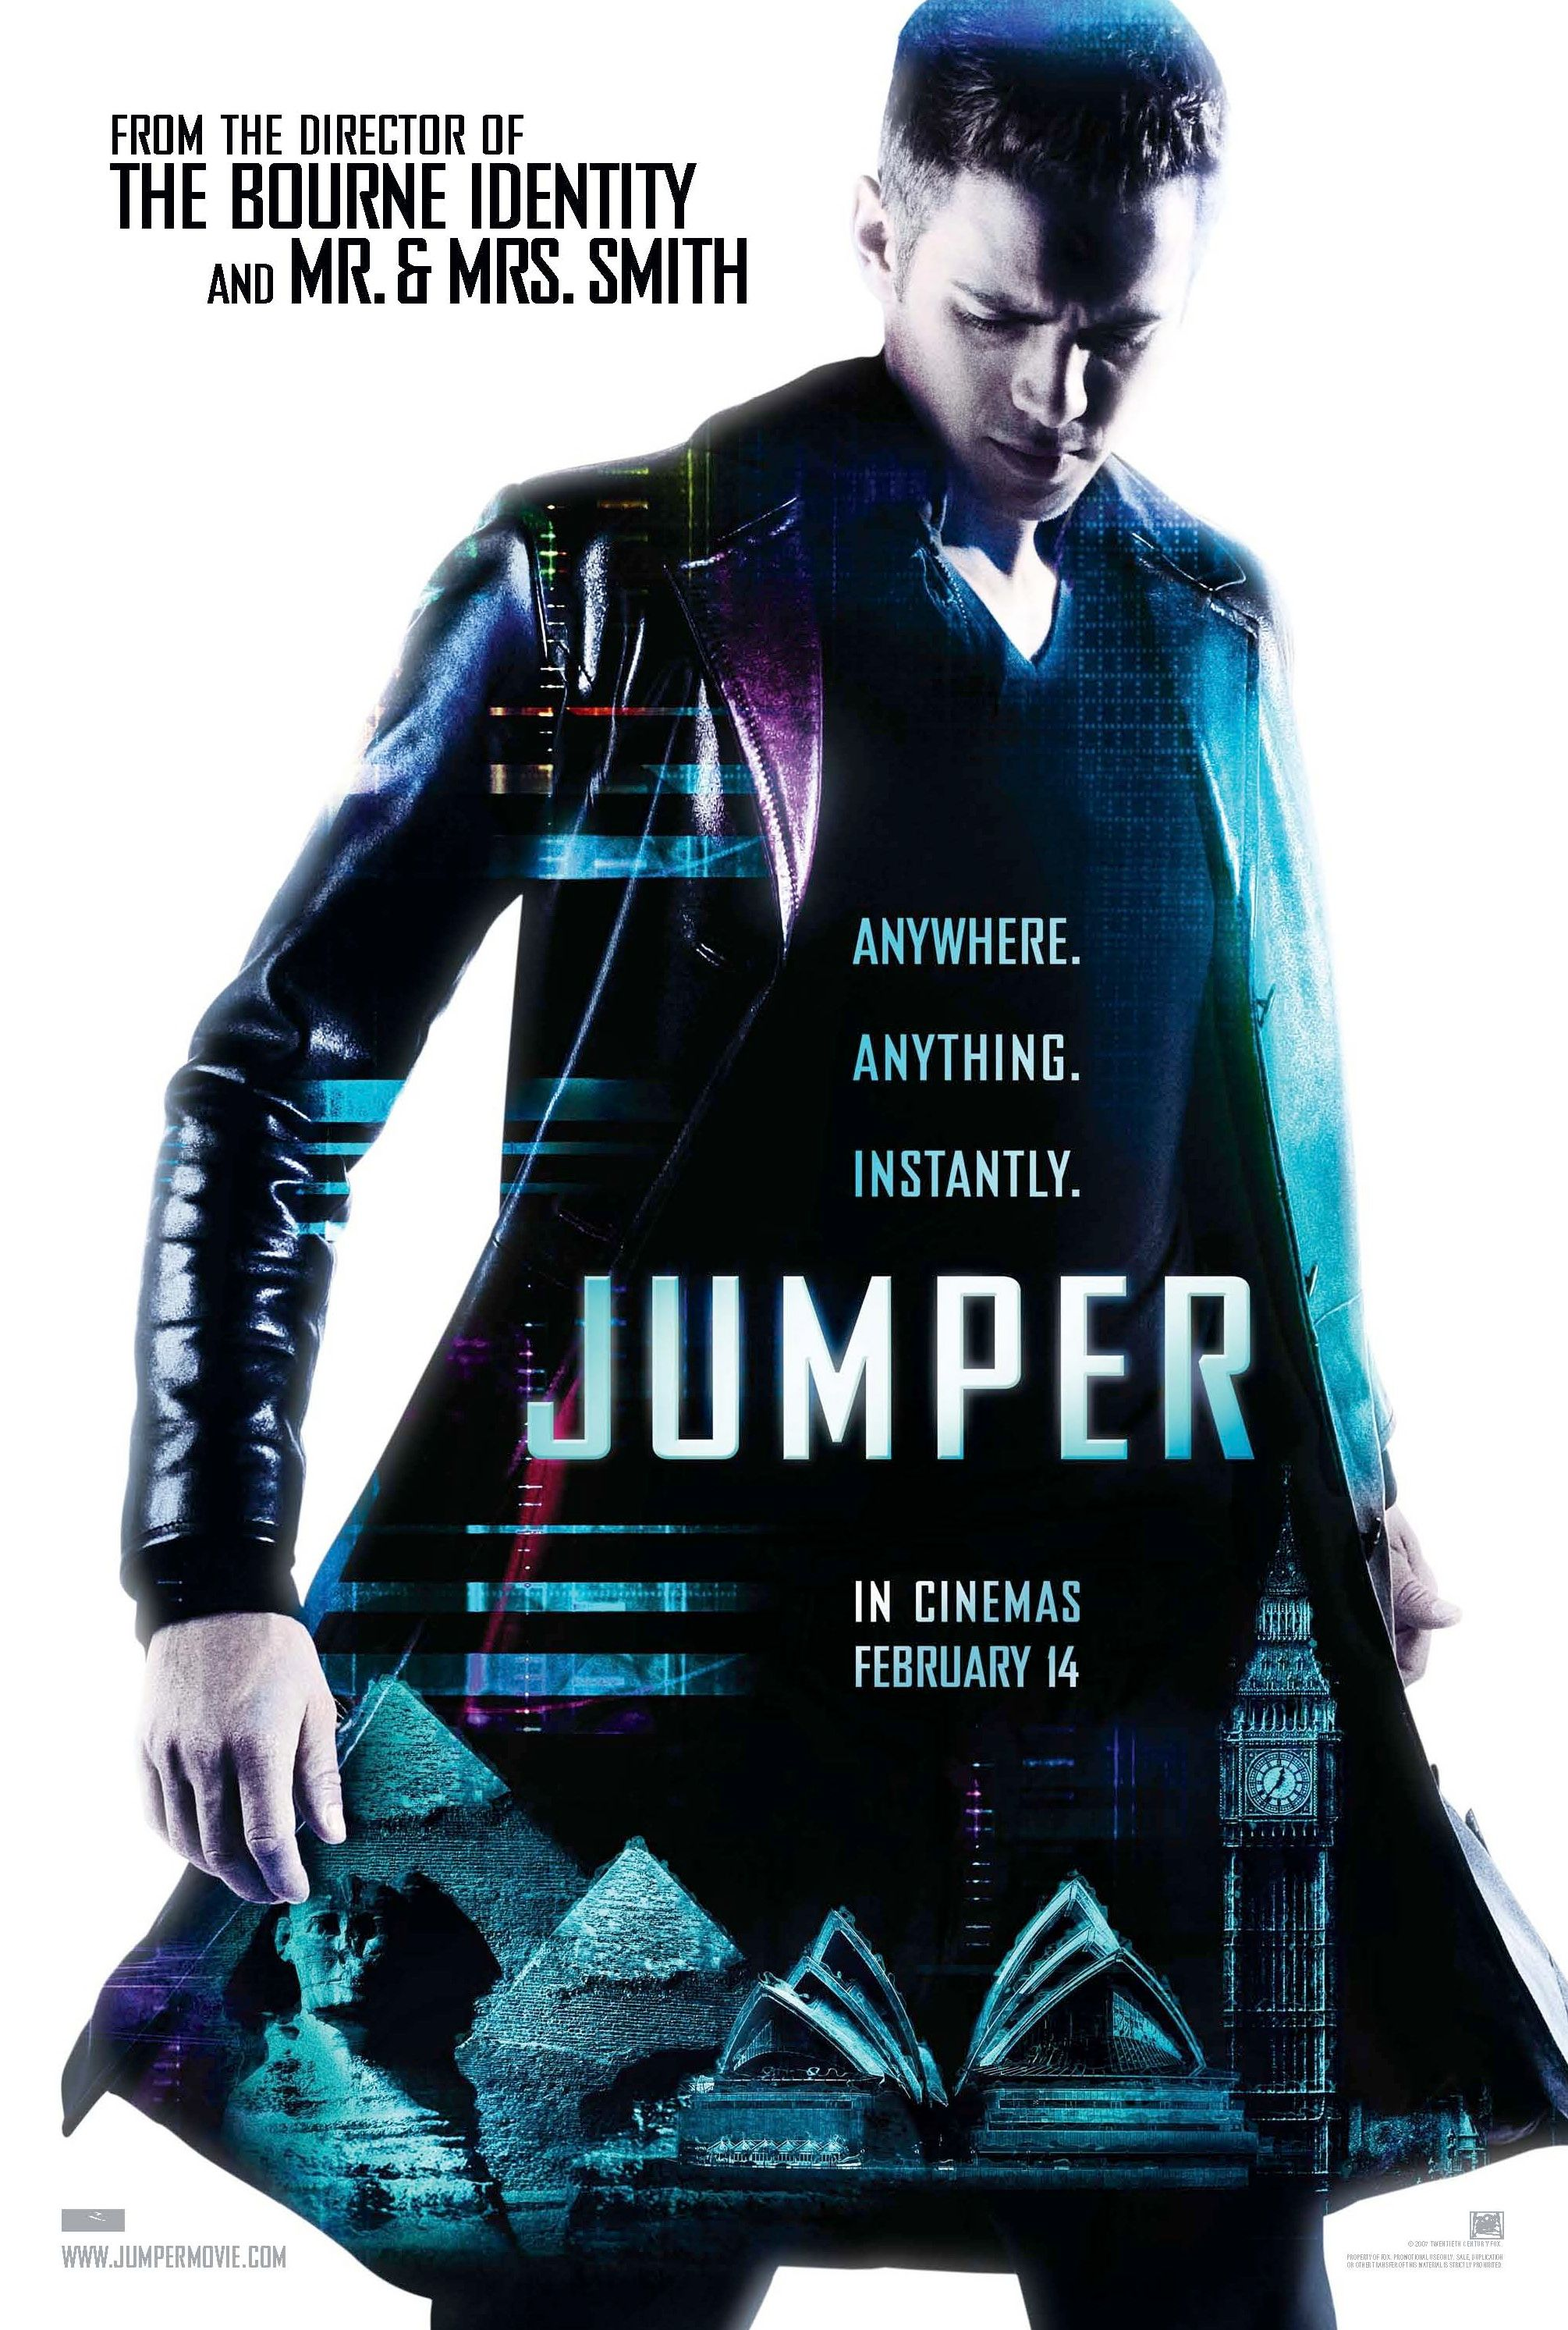 http://www.collider.com/uploads/imageGallery/Jumper/jumper_uk_movie_poster_onesheet_l.jpg